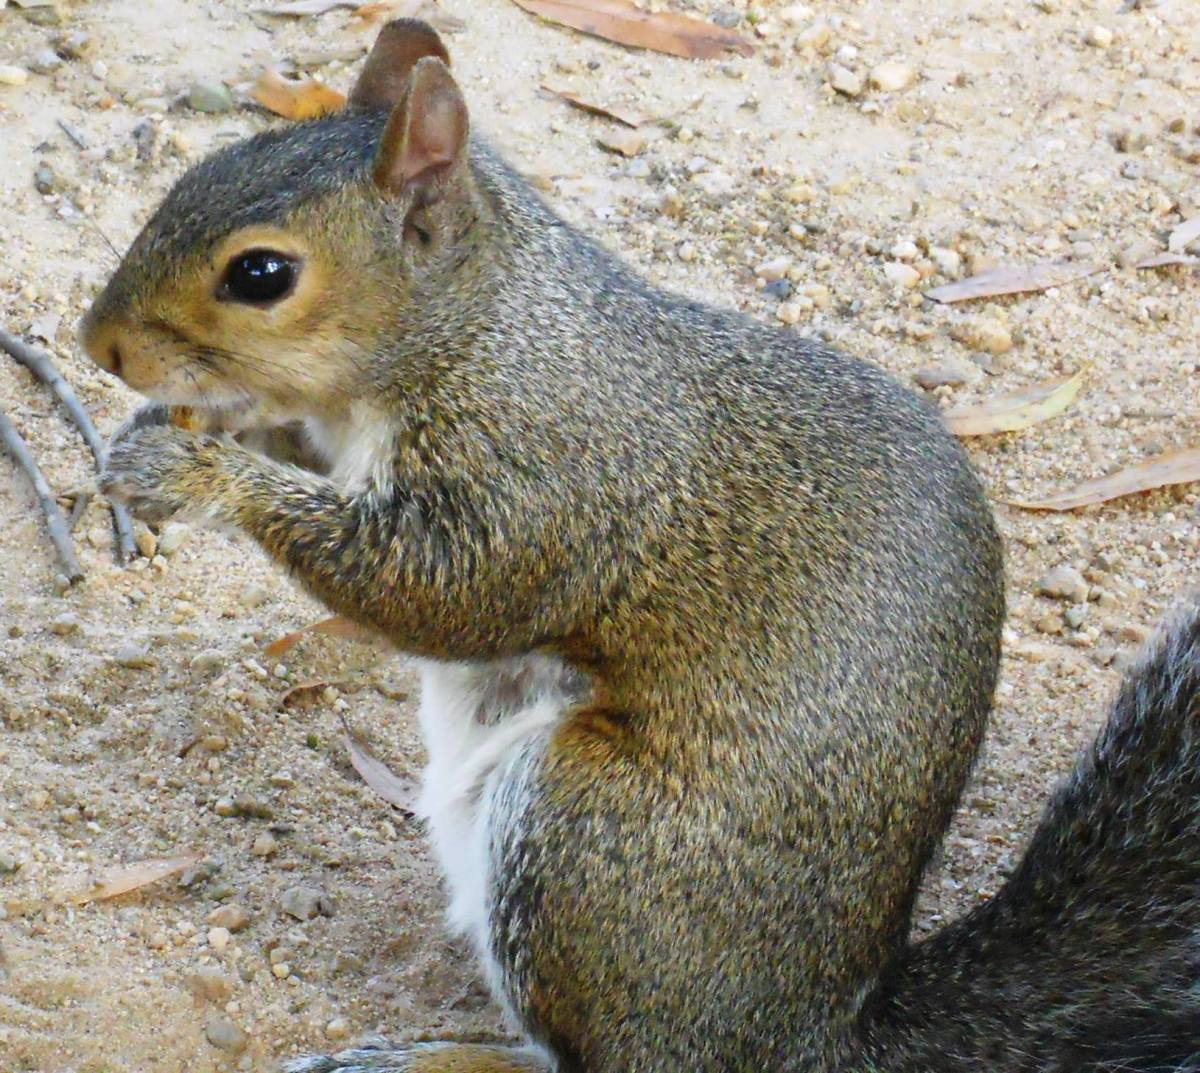 Lessons Learned from a Squirrel